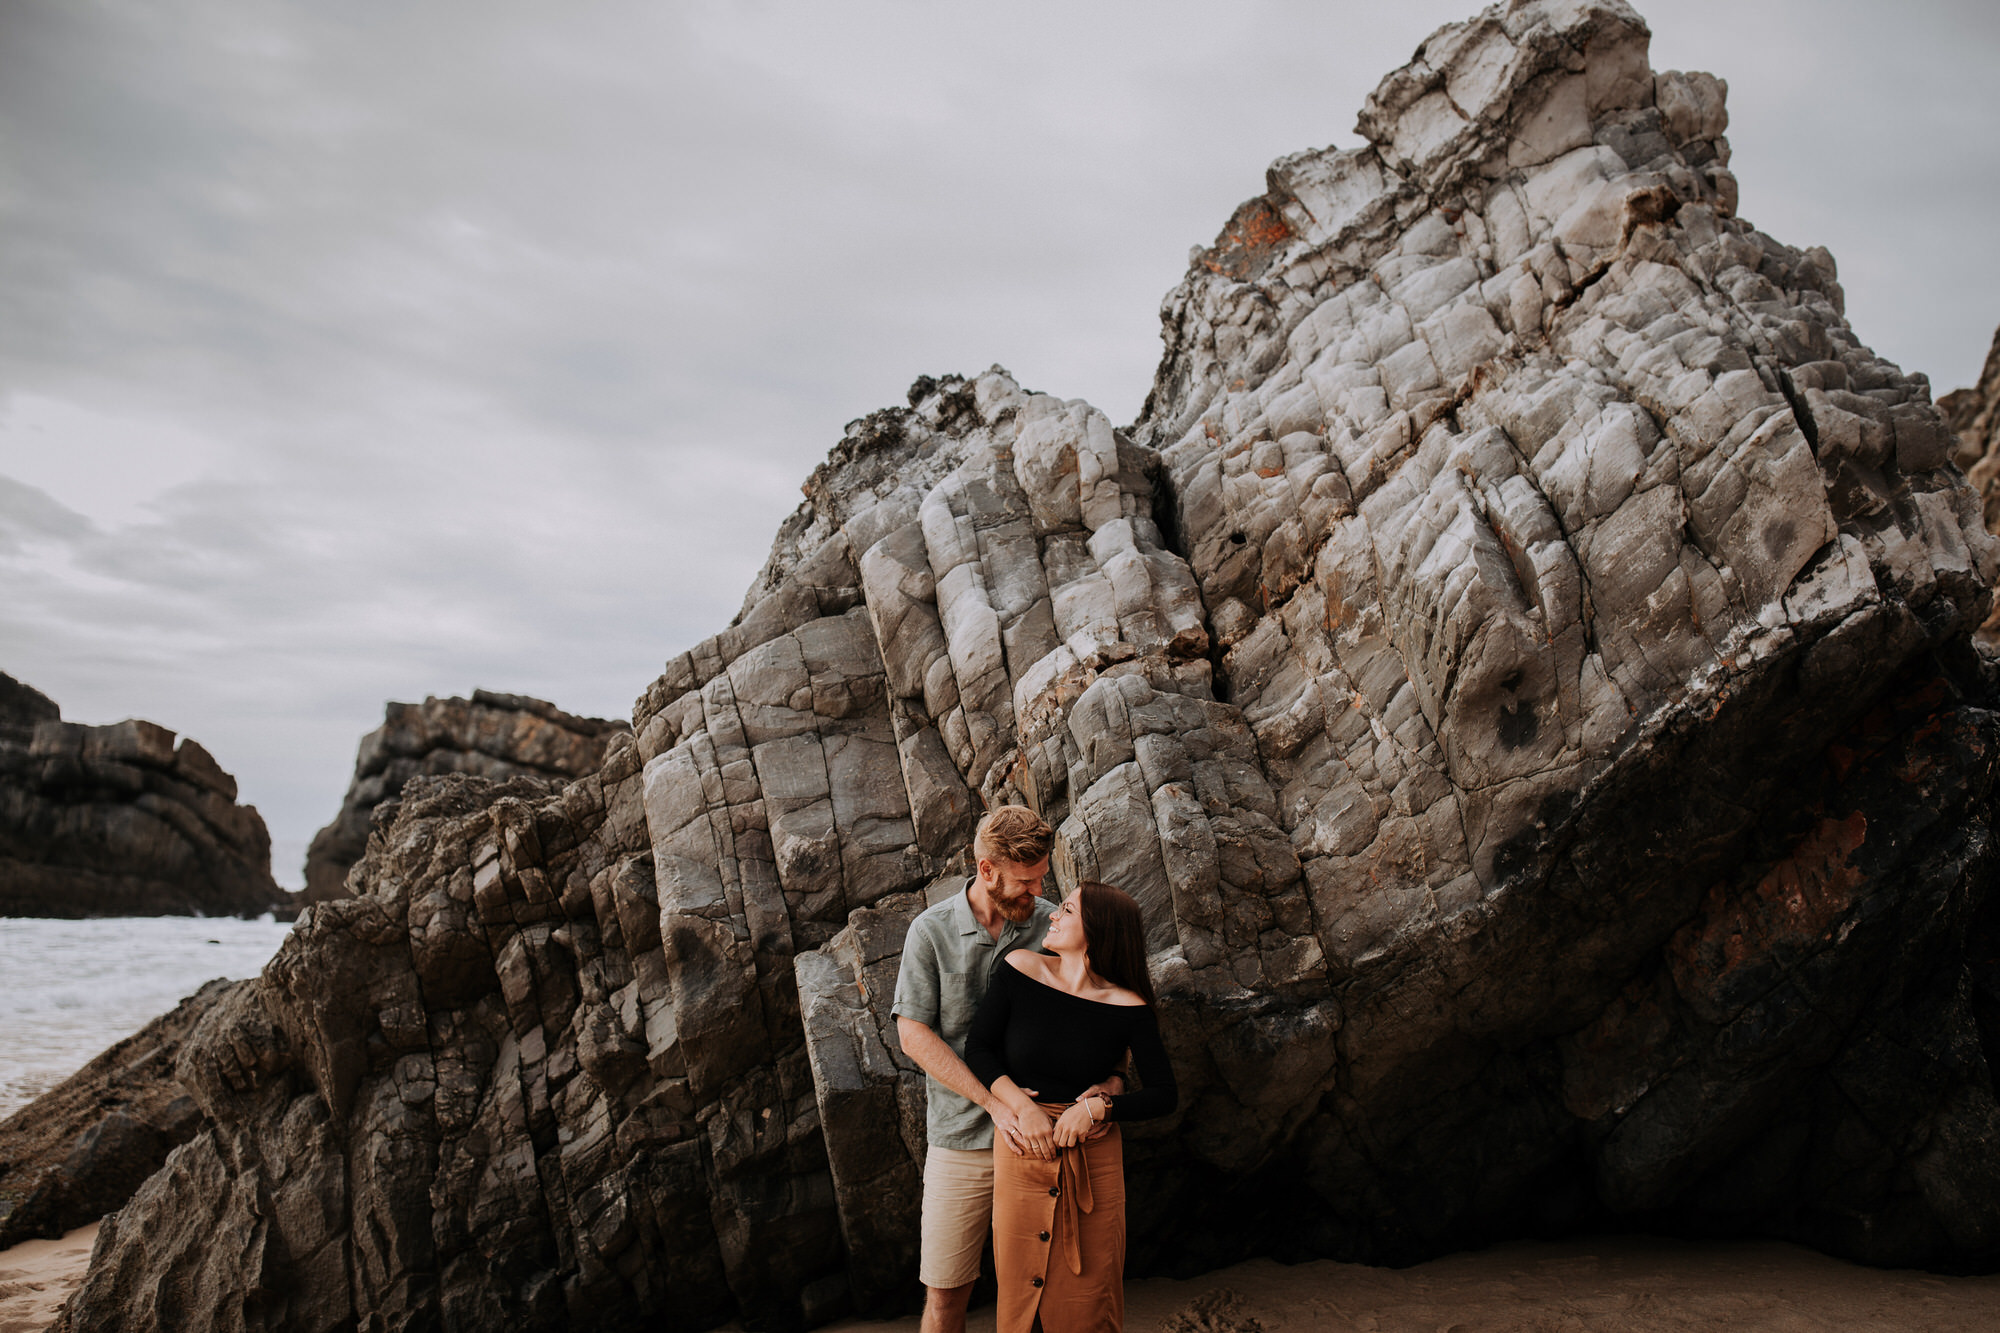 06 Alla + Paul, Sintra - Adraga - session - filipe santiago fotografia - beach - photography - couple - best - rocks - view - spot